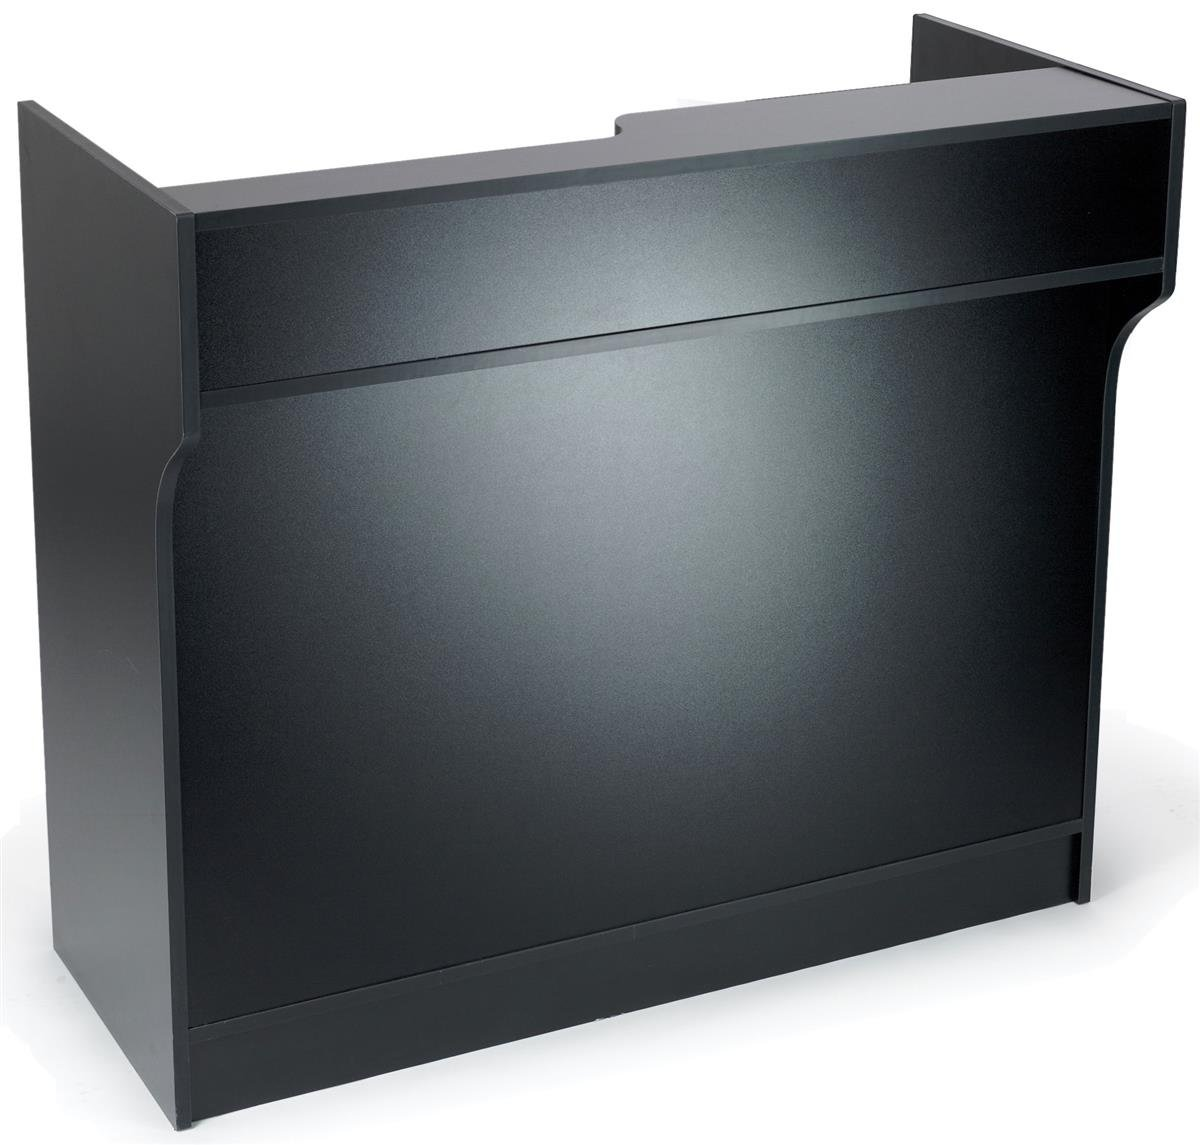 Free-Standing Black Melamine Register Stand, with Adjustable Shelves, Pull-Out Drawer, and Check Writing Area by Displays2go